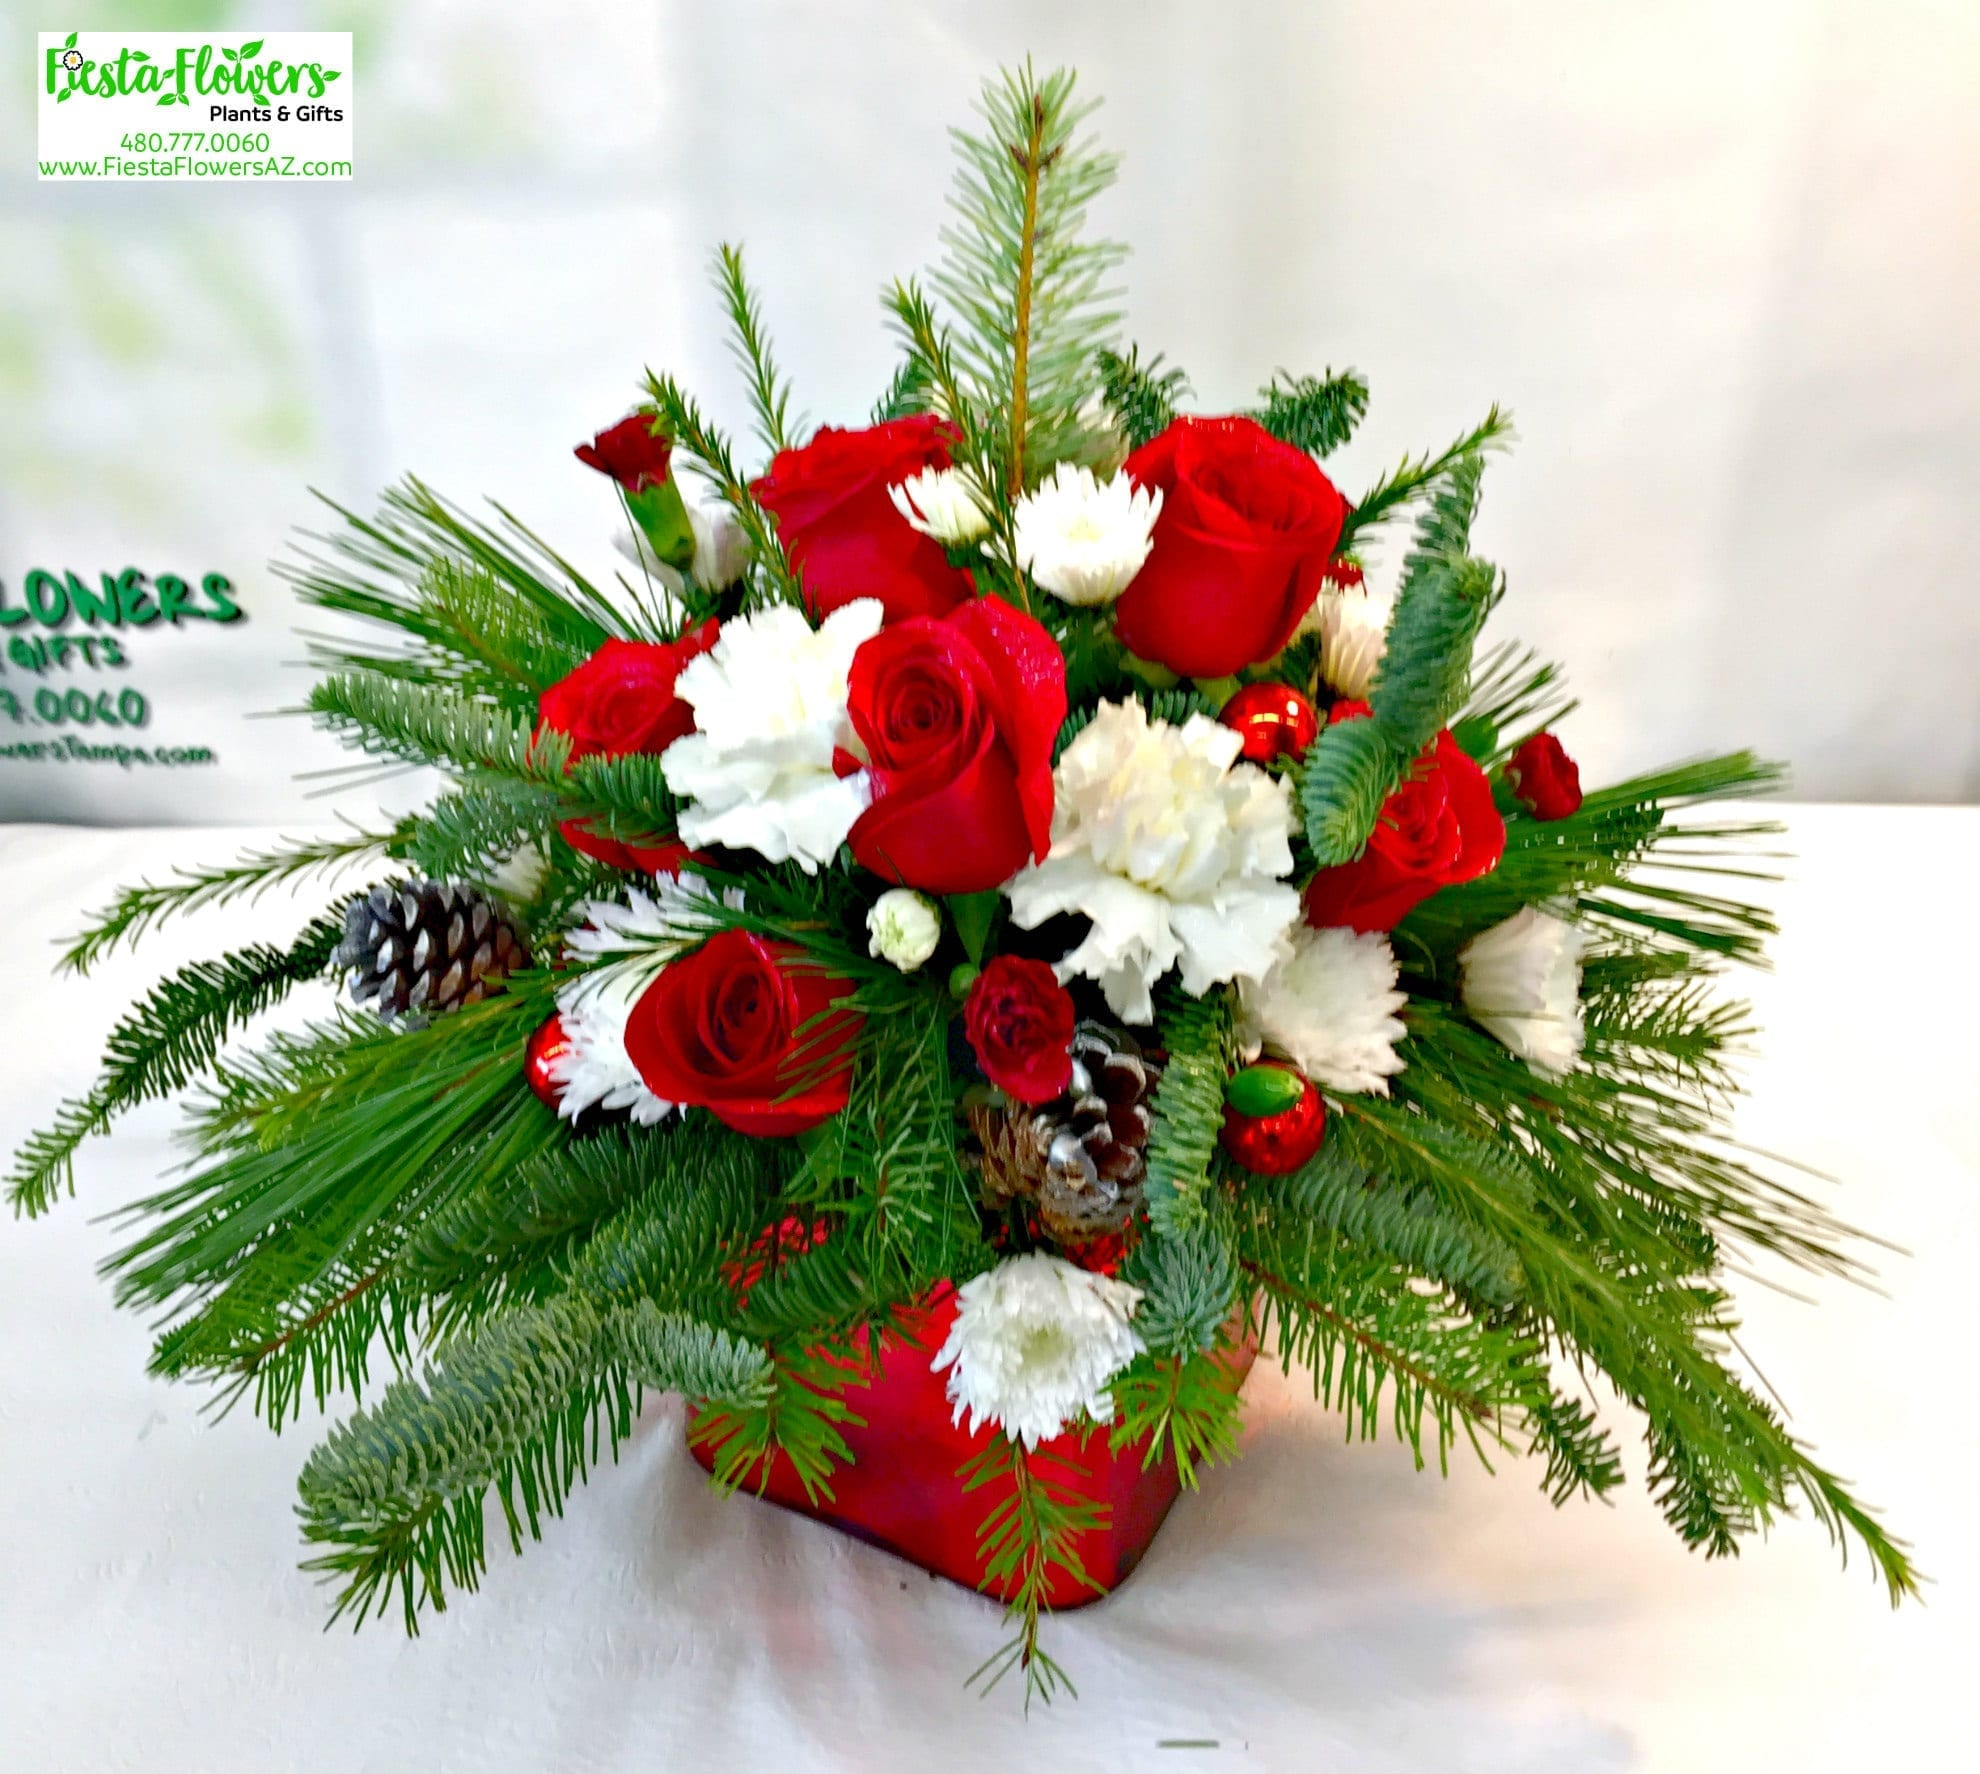 Merry Christmas Cube [H-7029] - Fiesta Flowers Plants & Gifts